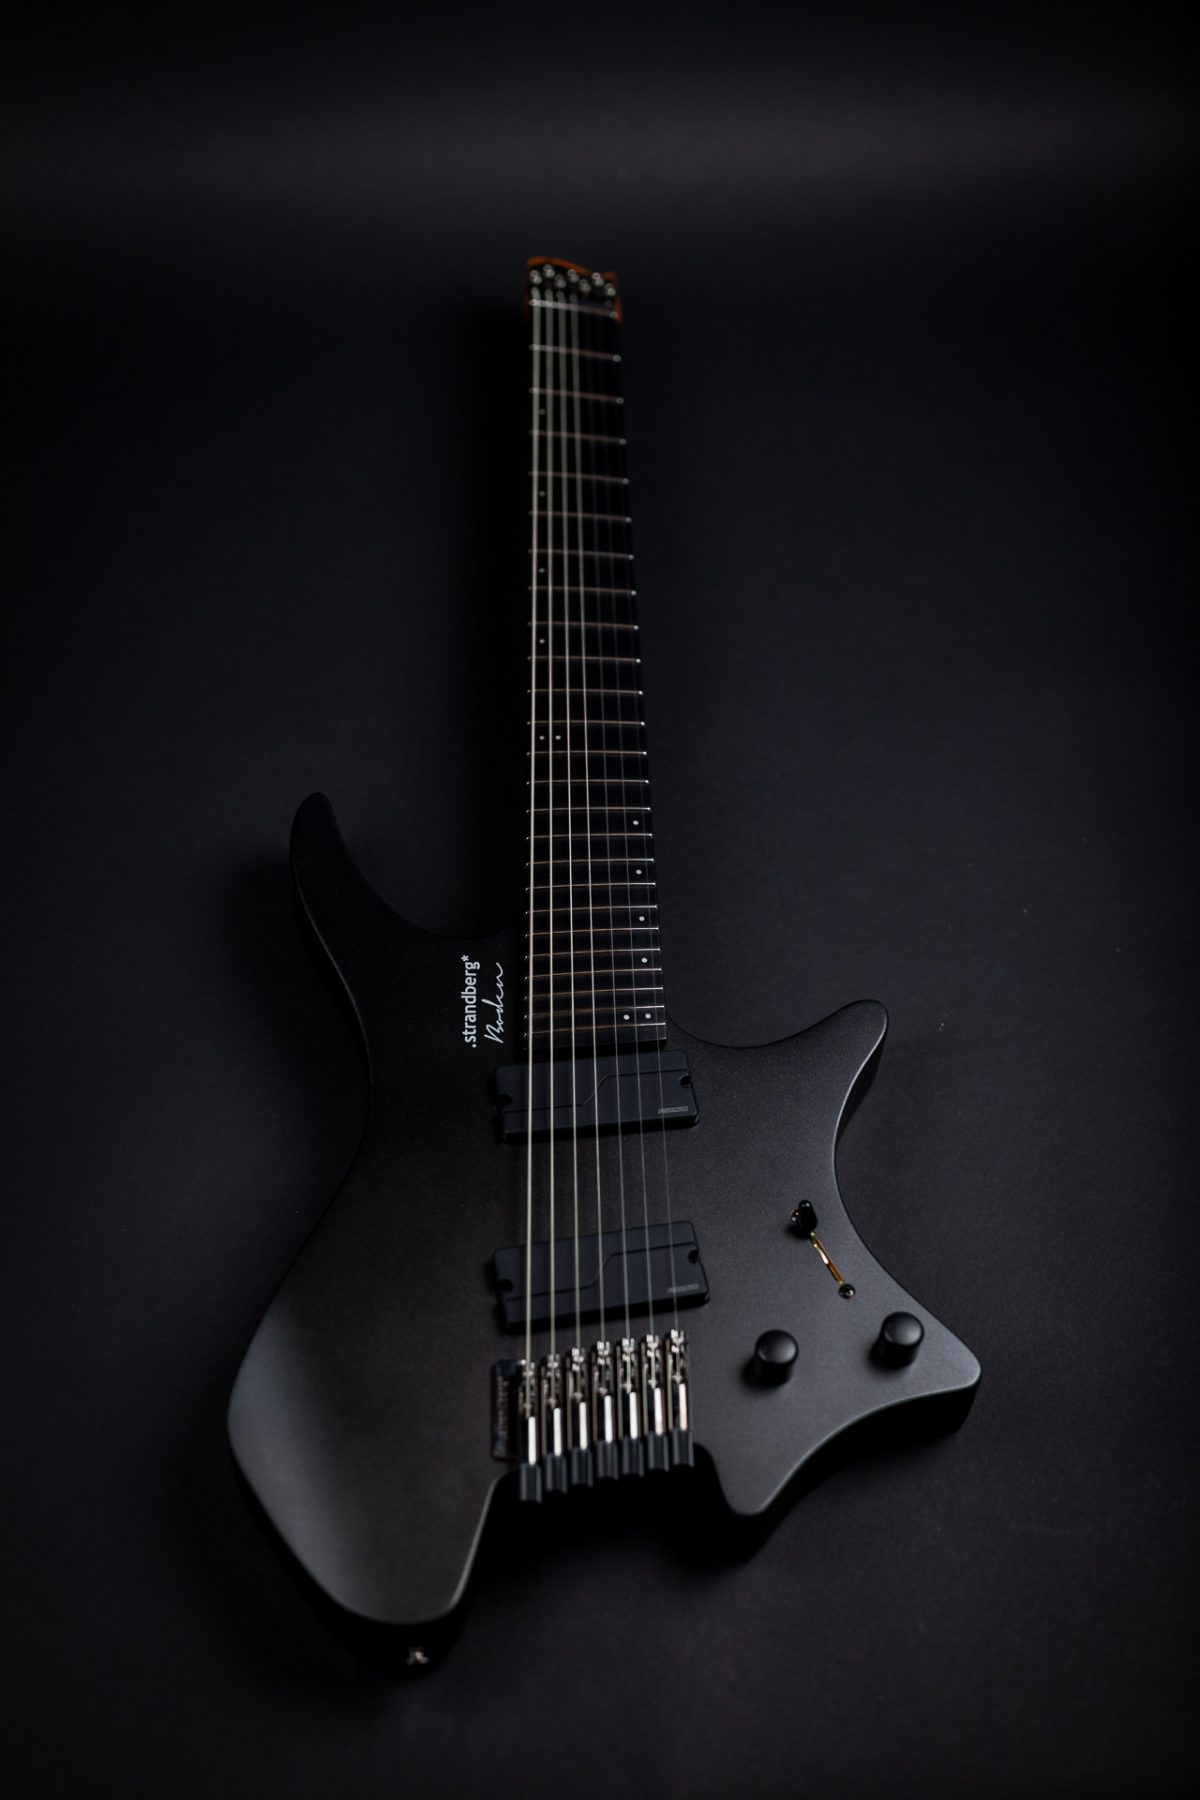 Headless guitar boden metal black 7 string front view